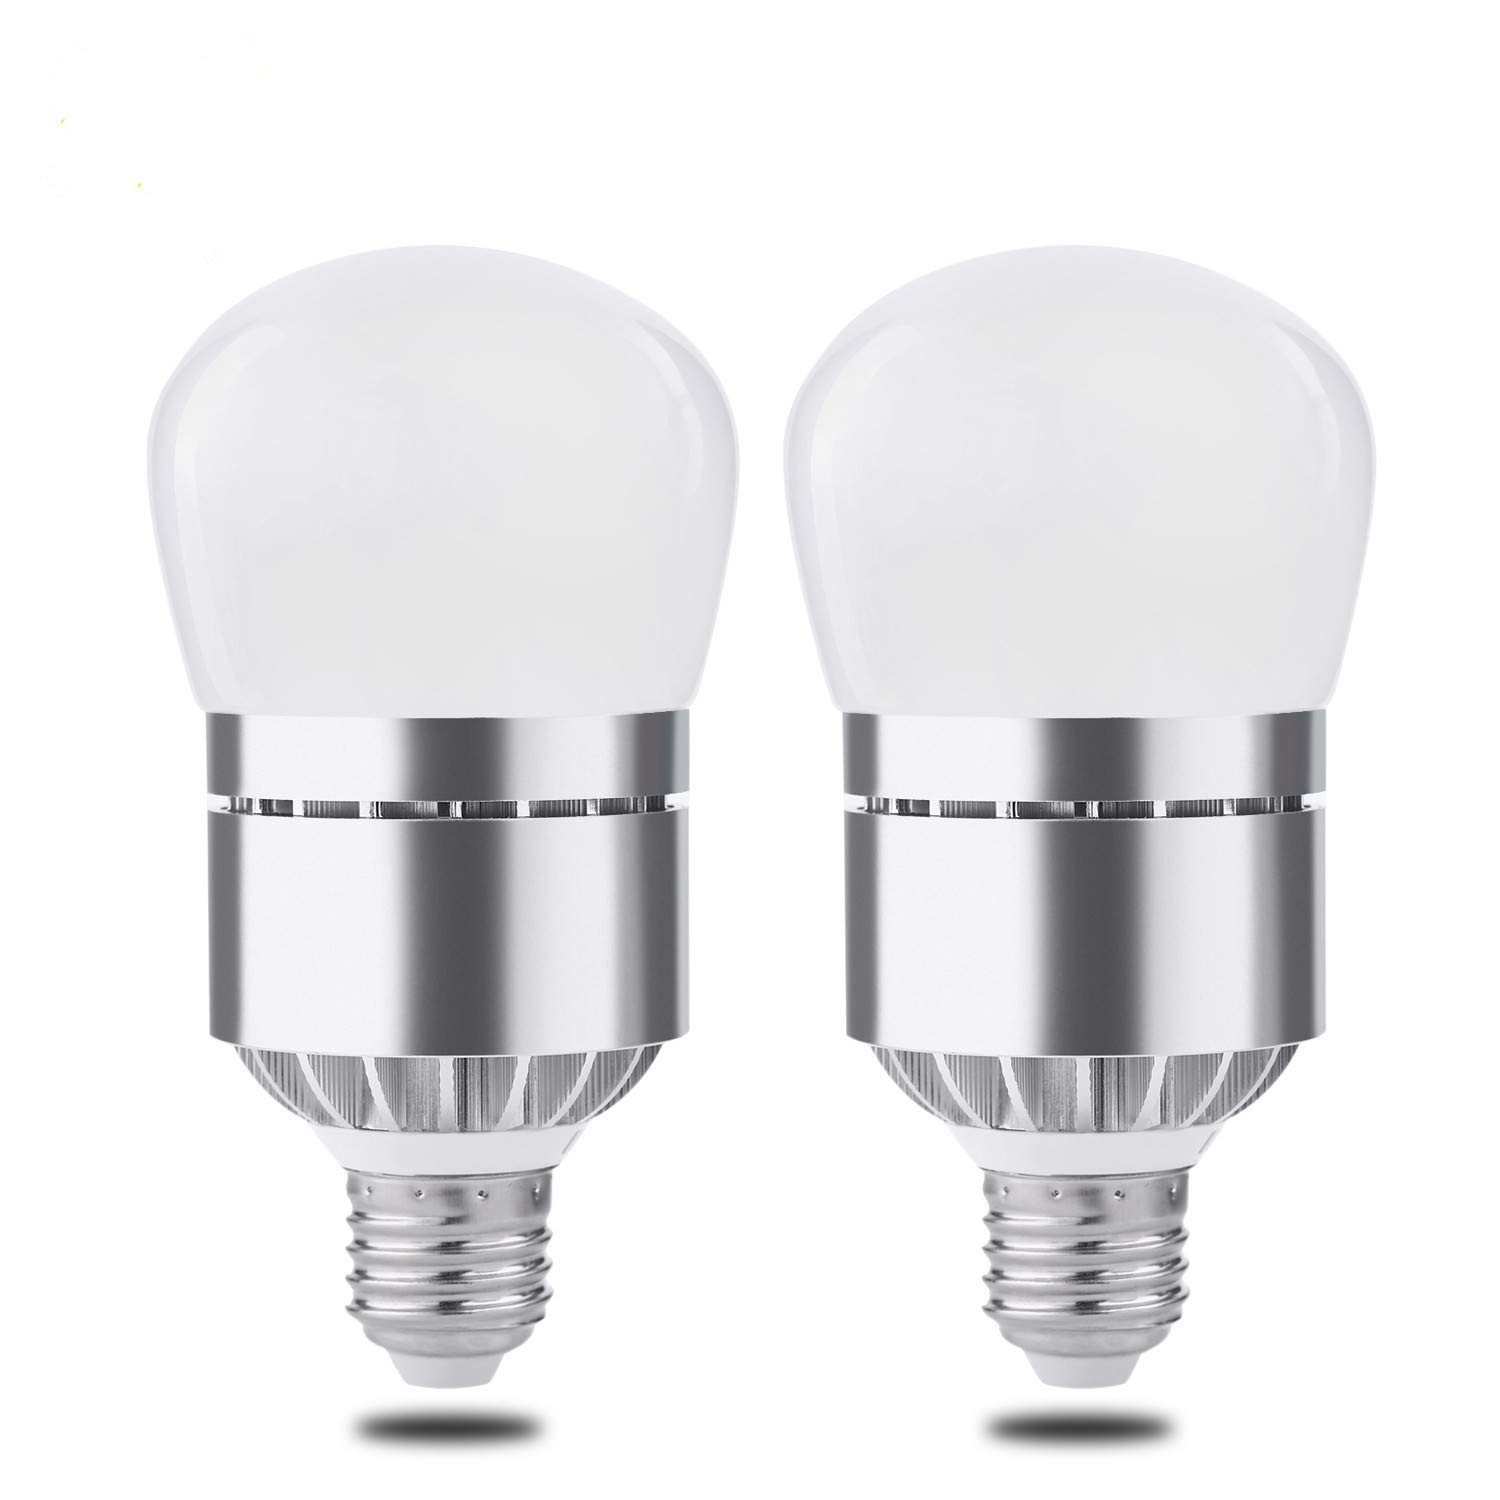 Dusk To Dawn Light Bulb Sensor Led Light Bulbs 12w 100w Equivalent E26 Automatic On Off Indoor Outdoor Smart Lighting Lamp For Yard Porch Patio